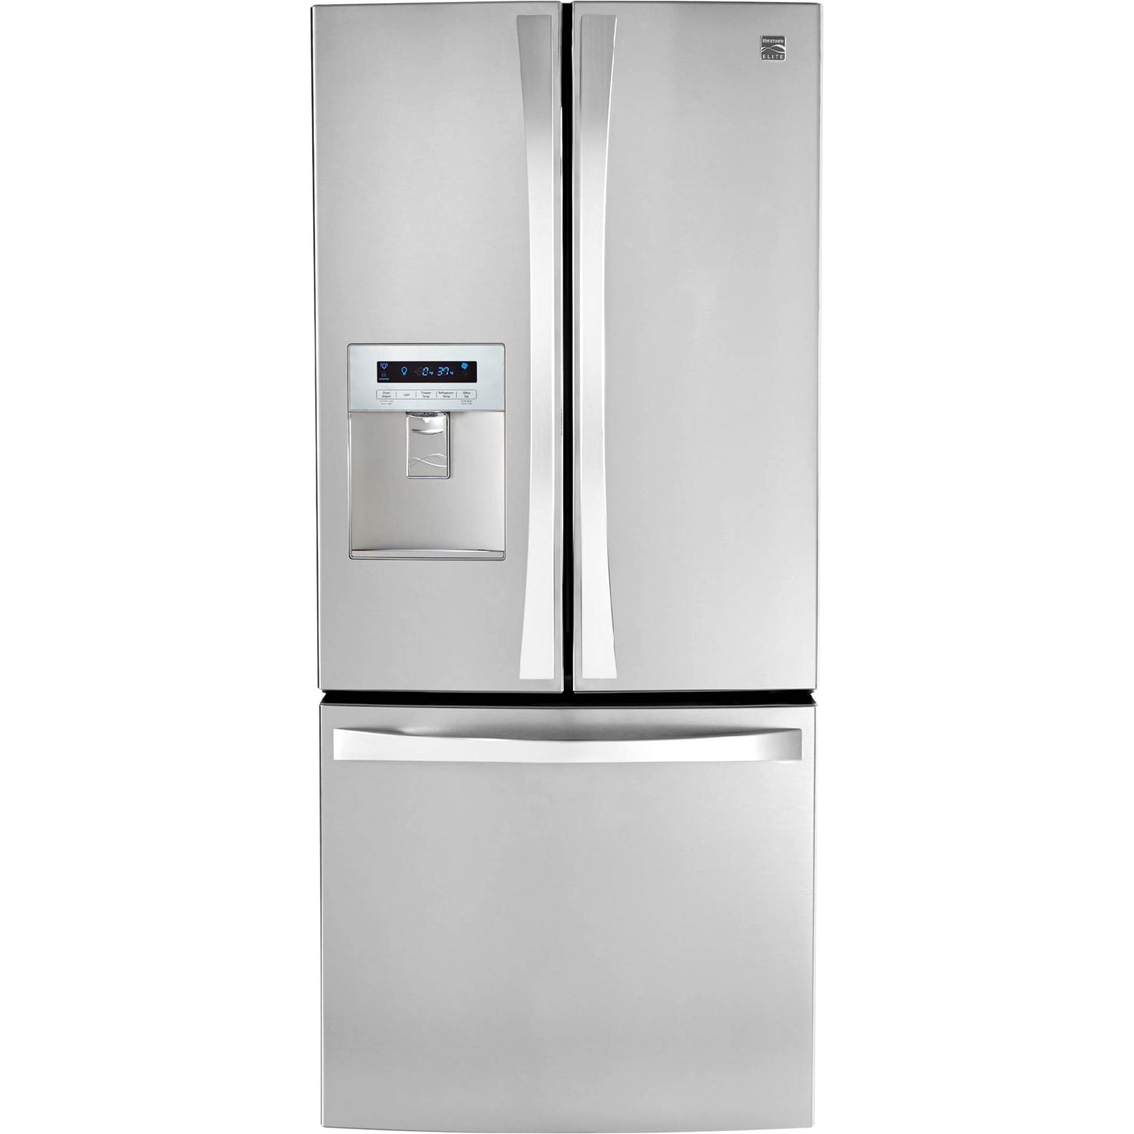 Kenmore Elite 21 8 Cu Ft French Door Bottom Freezer